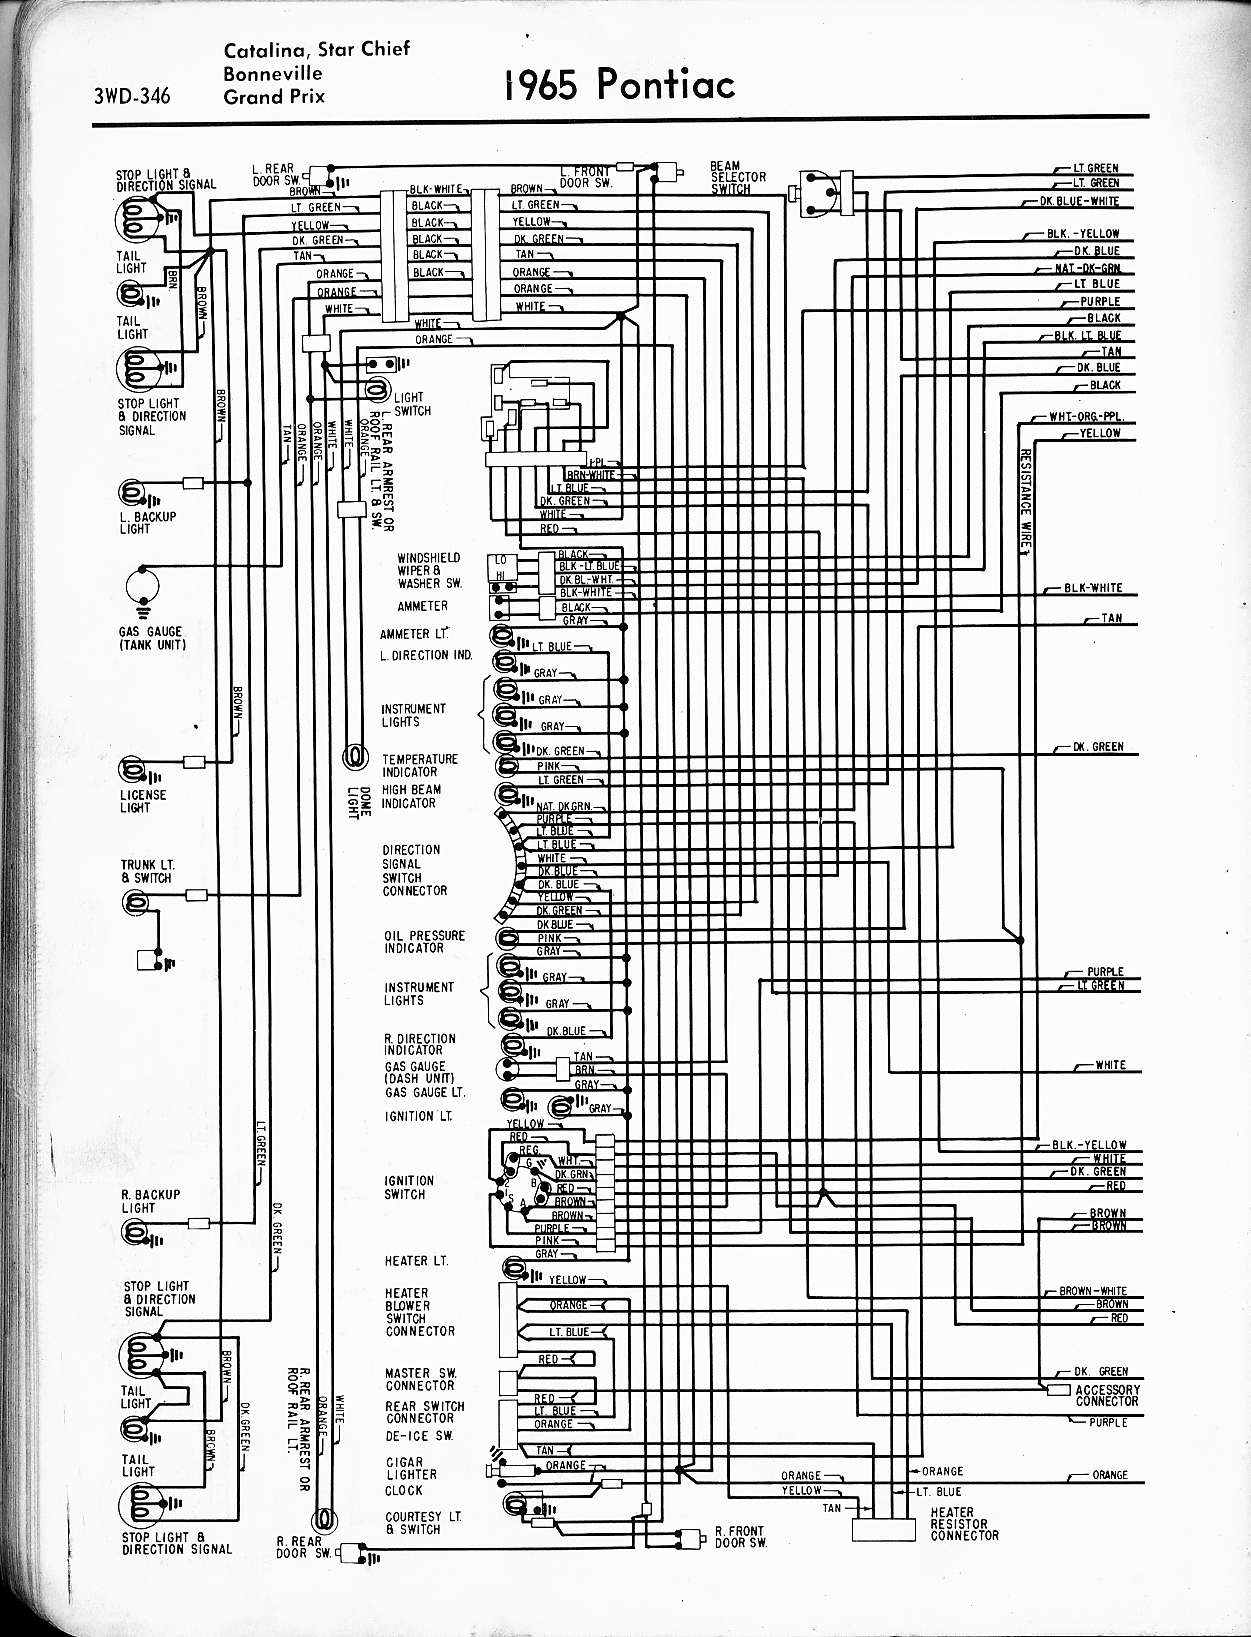 MWire5765 346 68 bonneville wiring diagram 100 images 1965 pontiac wiring 1967 gto wiring diagram at pacquiaovsvargaslive.co